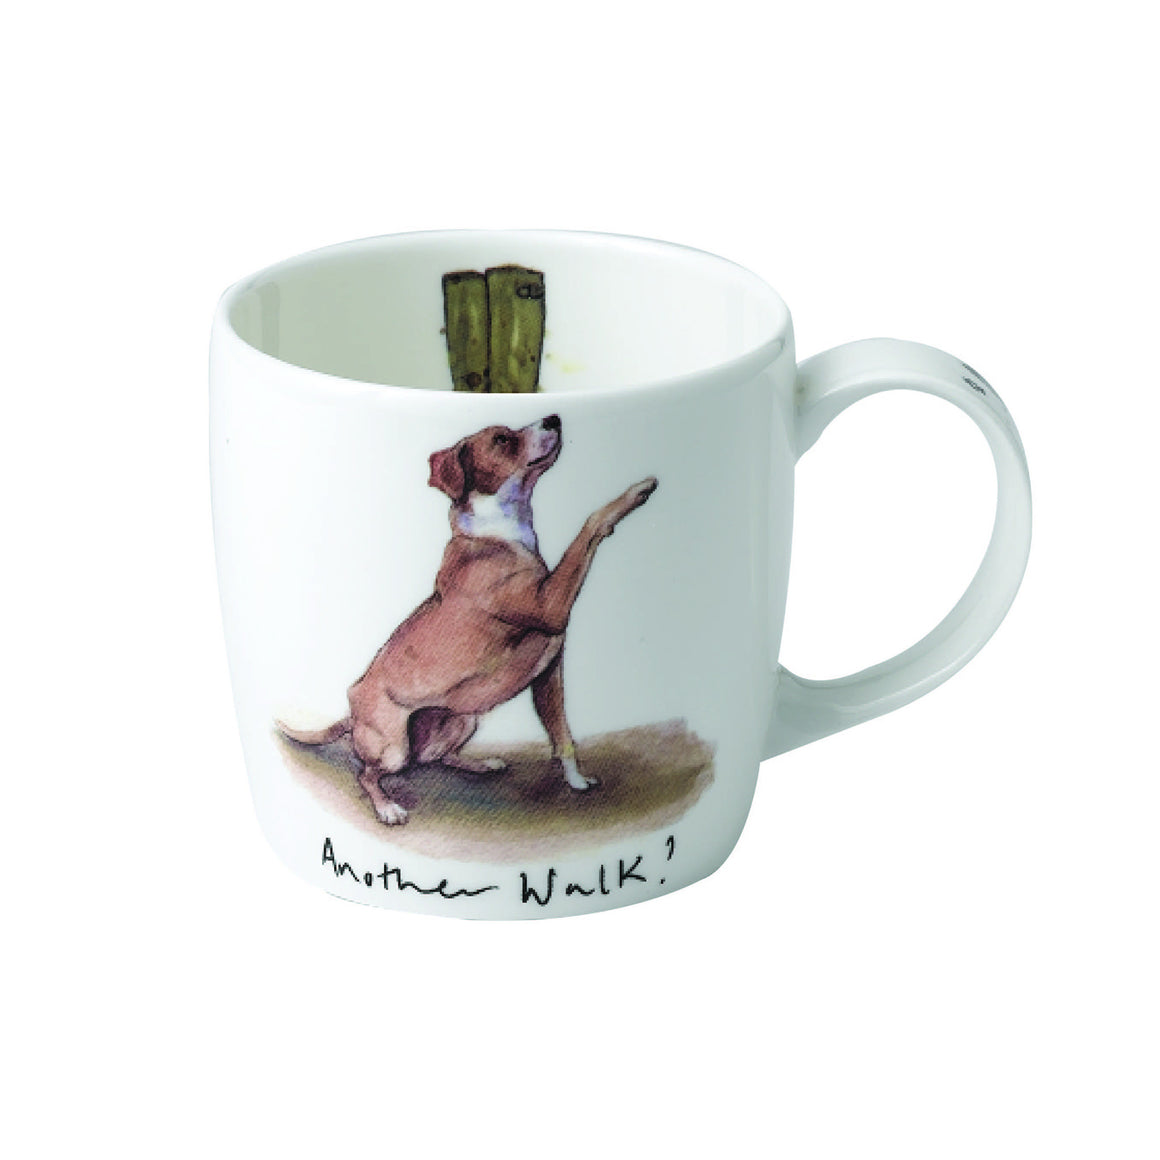 Katherine Tyrer 'Another Walk' fine bone china york mug